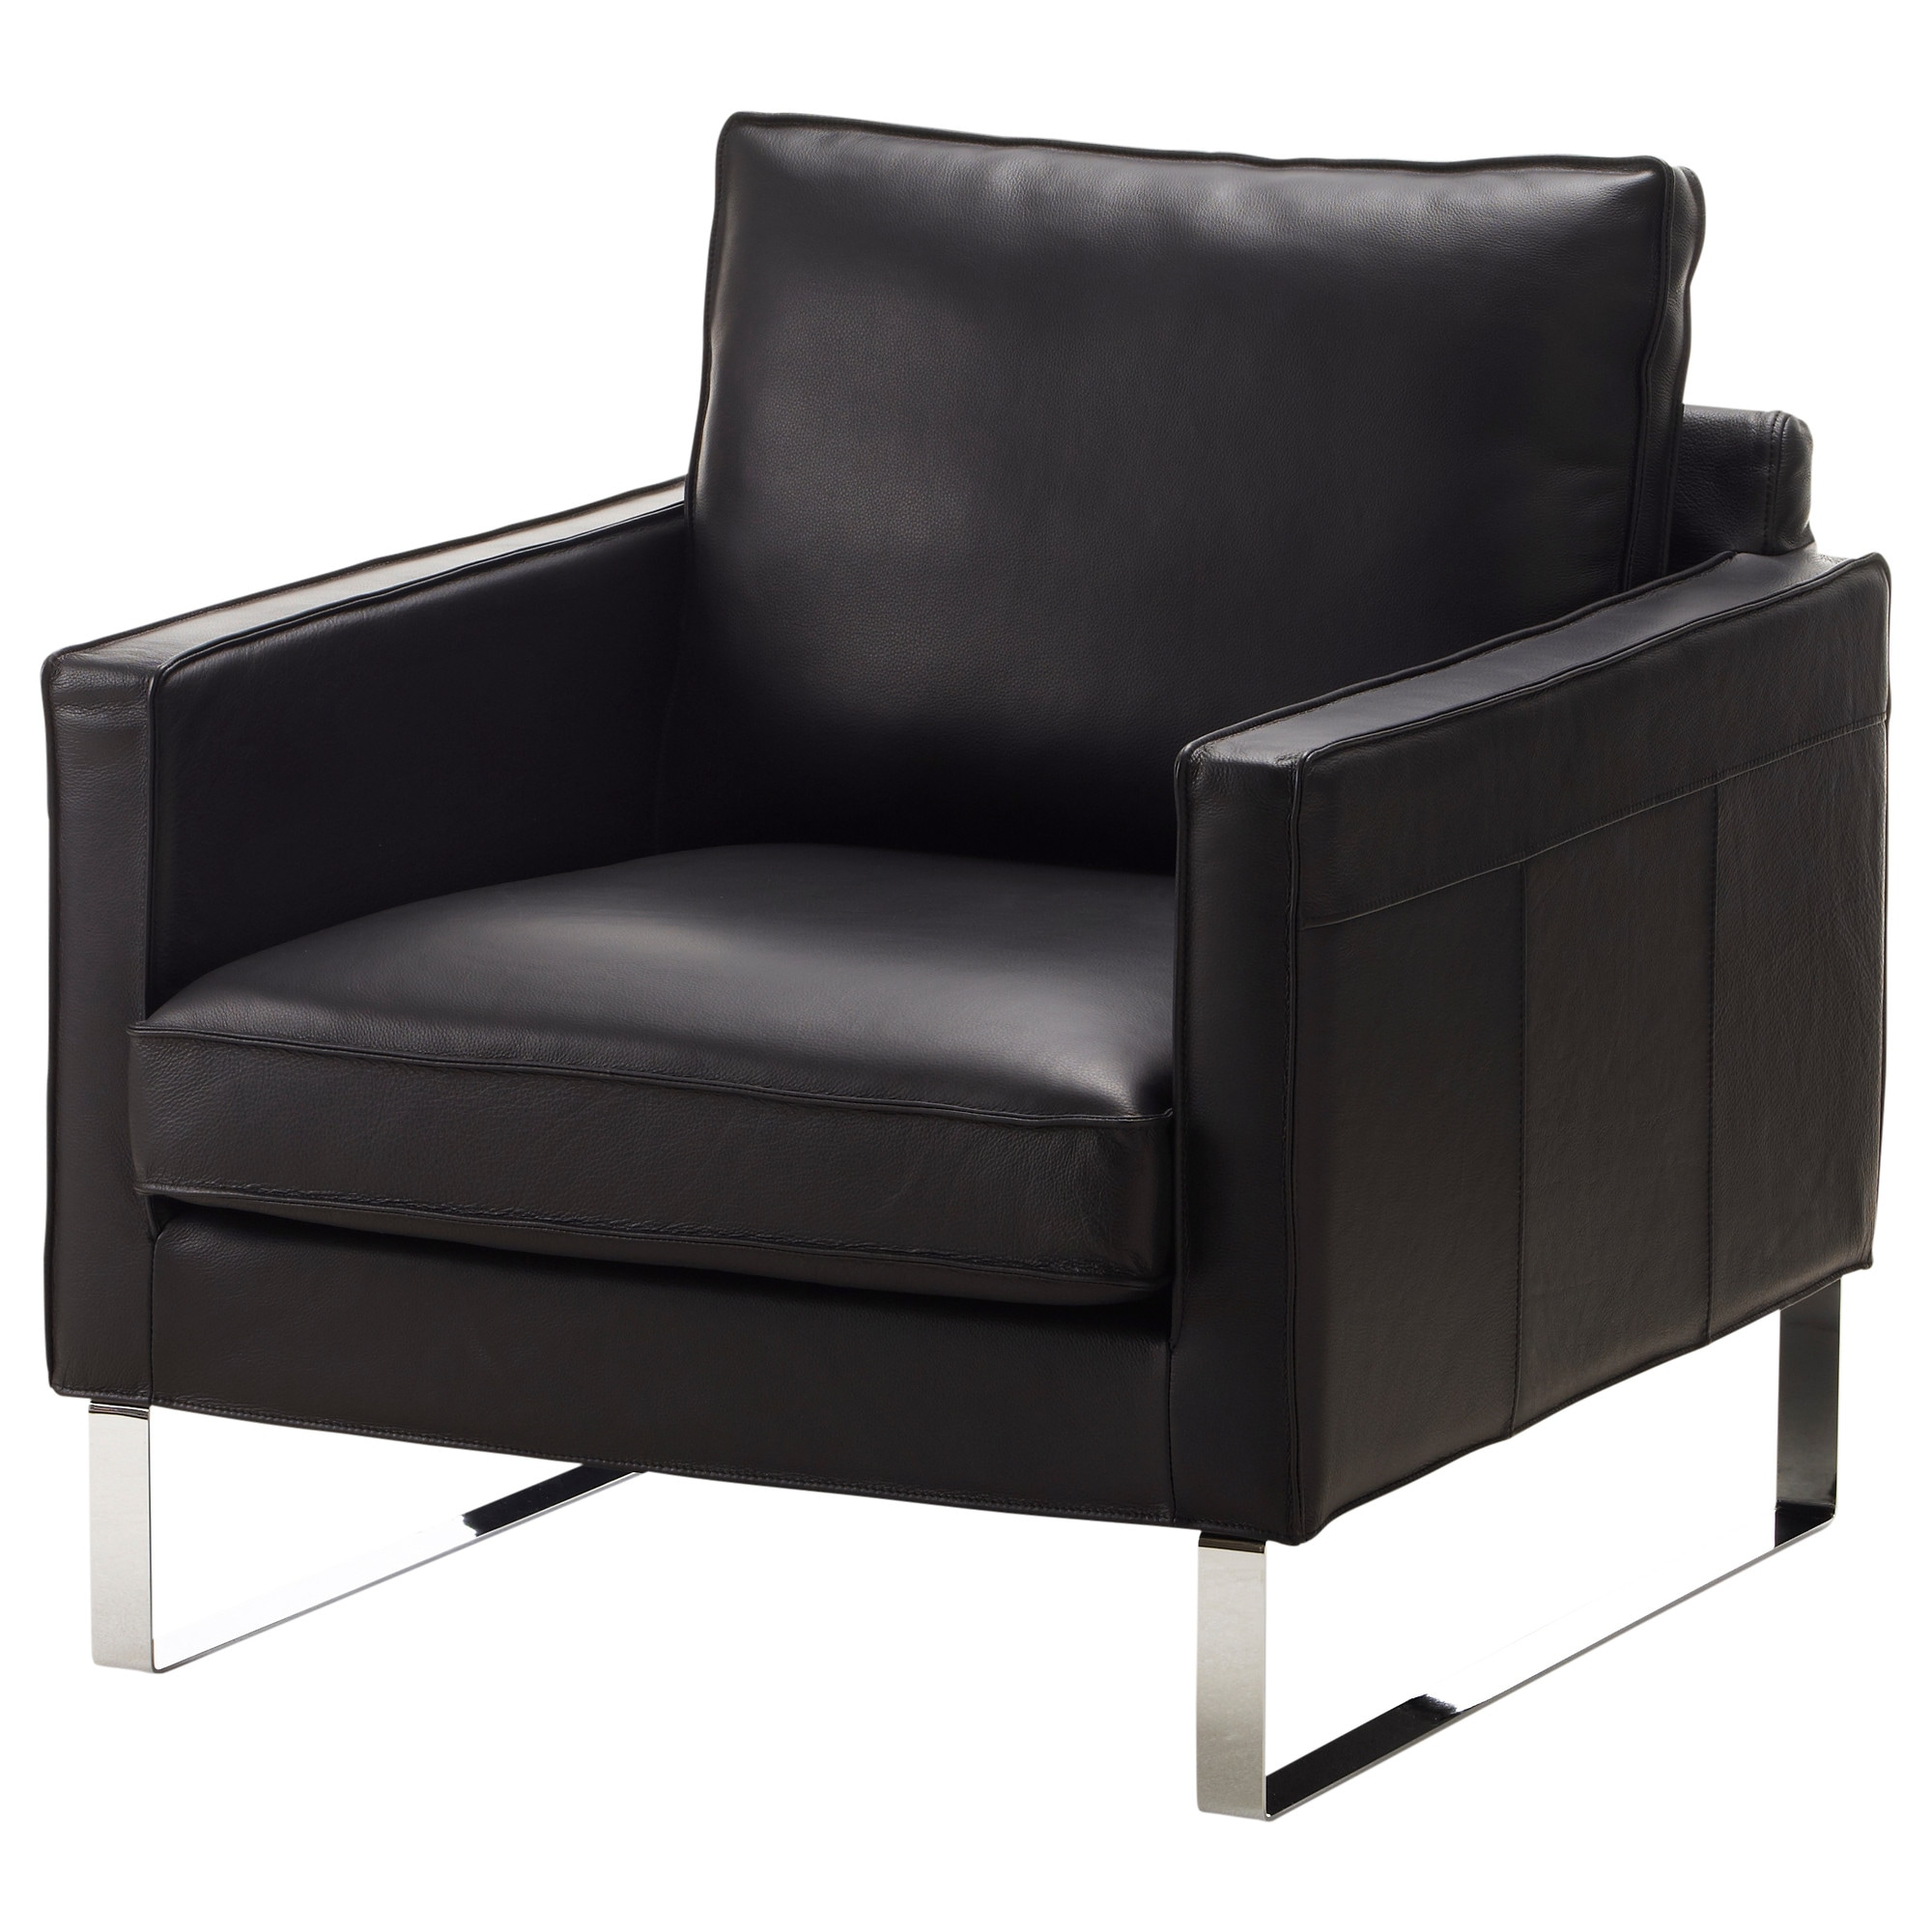 Black leather arm chair - Mellby Armchair Grann Black Width 30 3 4 Depth 33 1